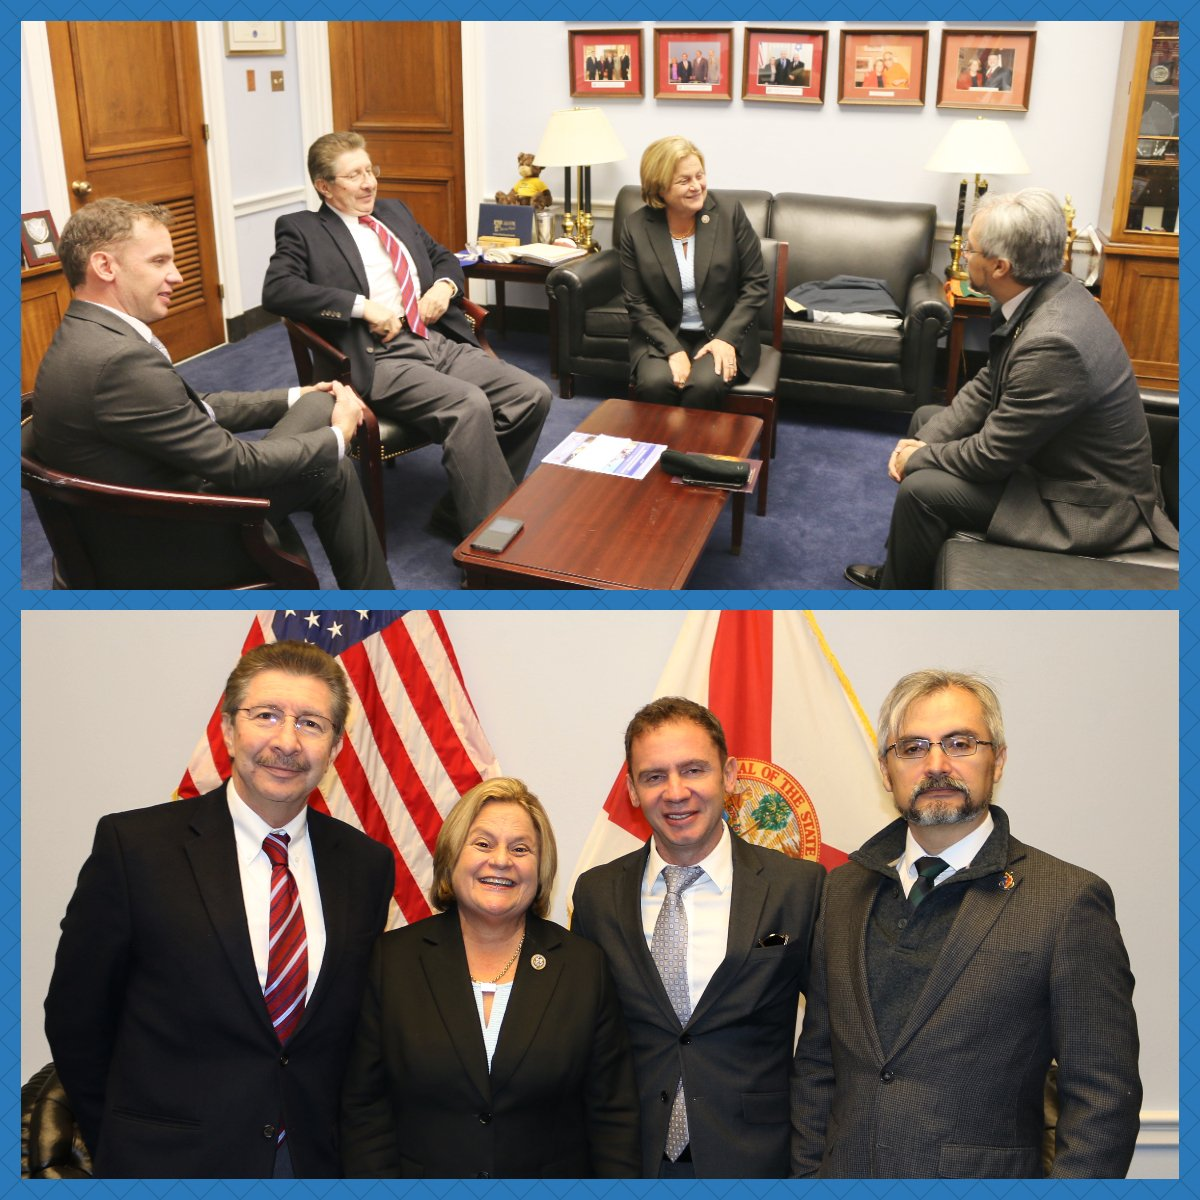 Met w/my constituent @Csanchezberzain who is among the many political exiles fleeing the corrupt #Morales regime in #Bolivia <br>http://pic.twitter.com/osmlFWoUqd